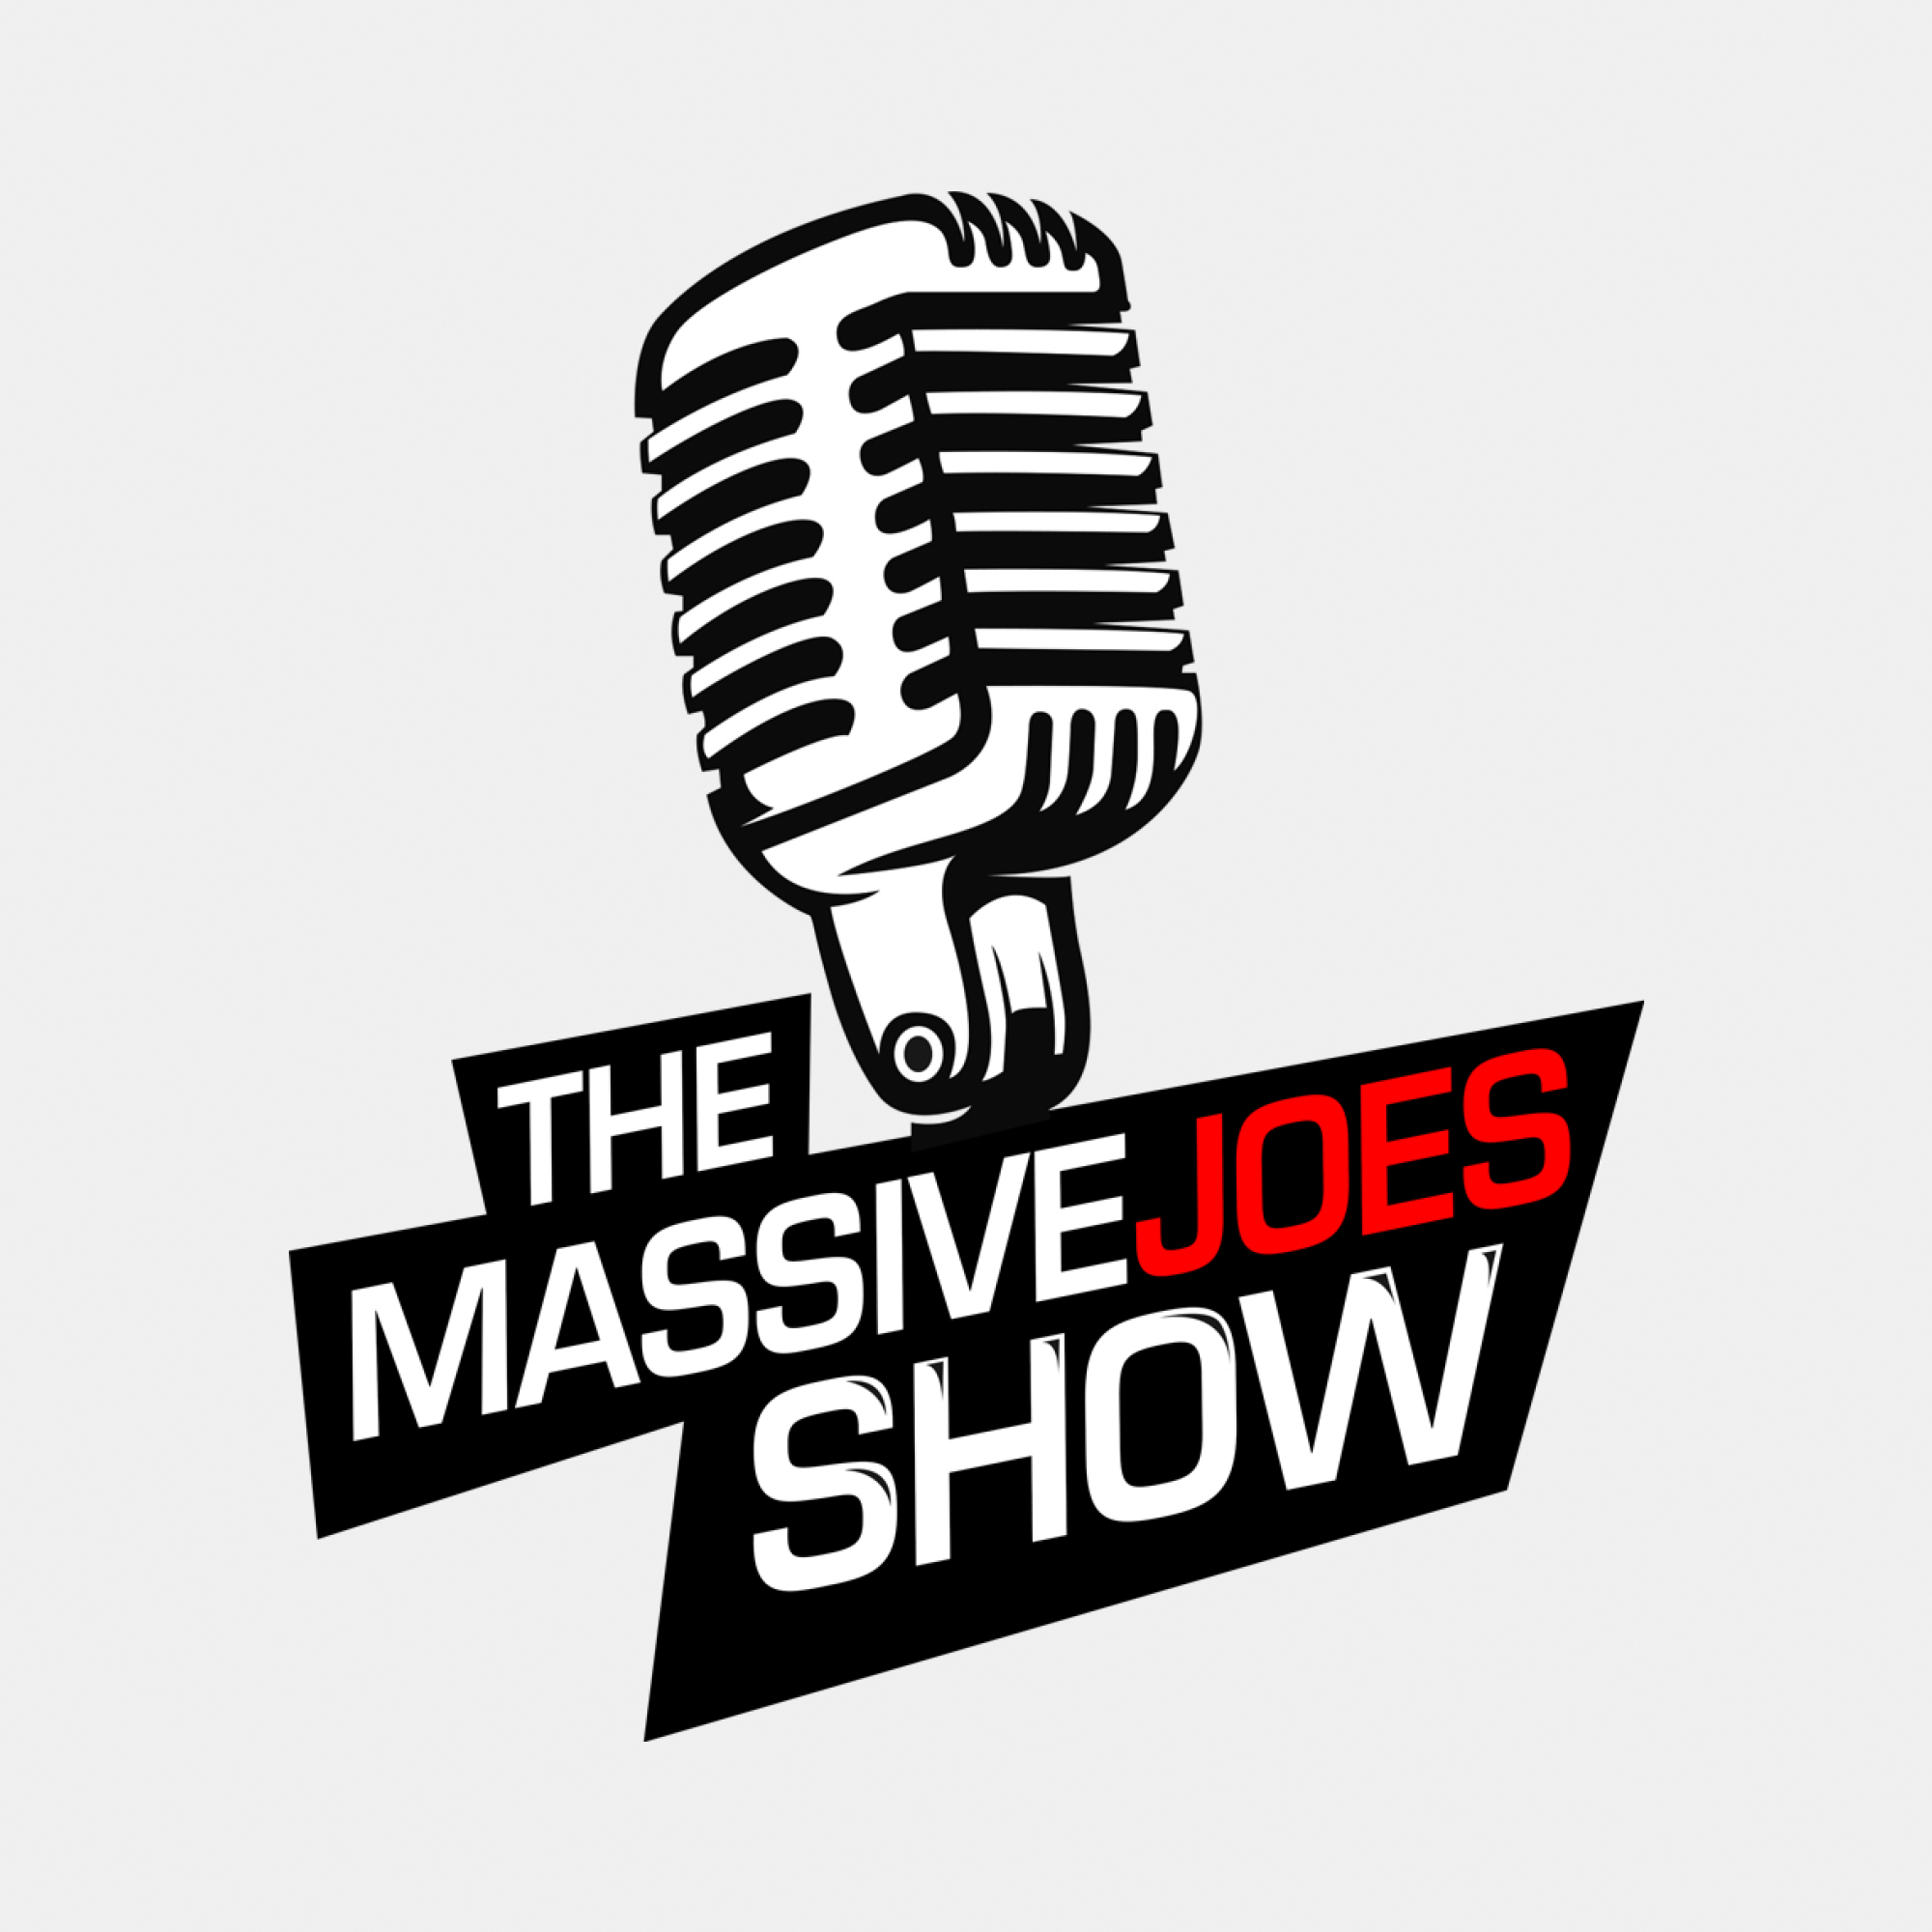 The MassiveJoes Show